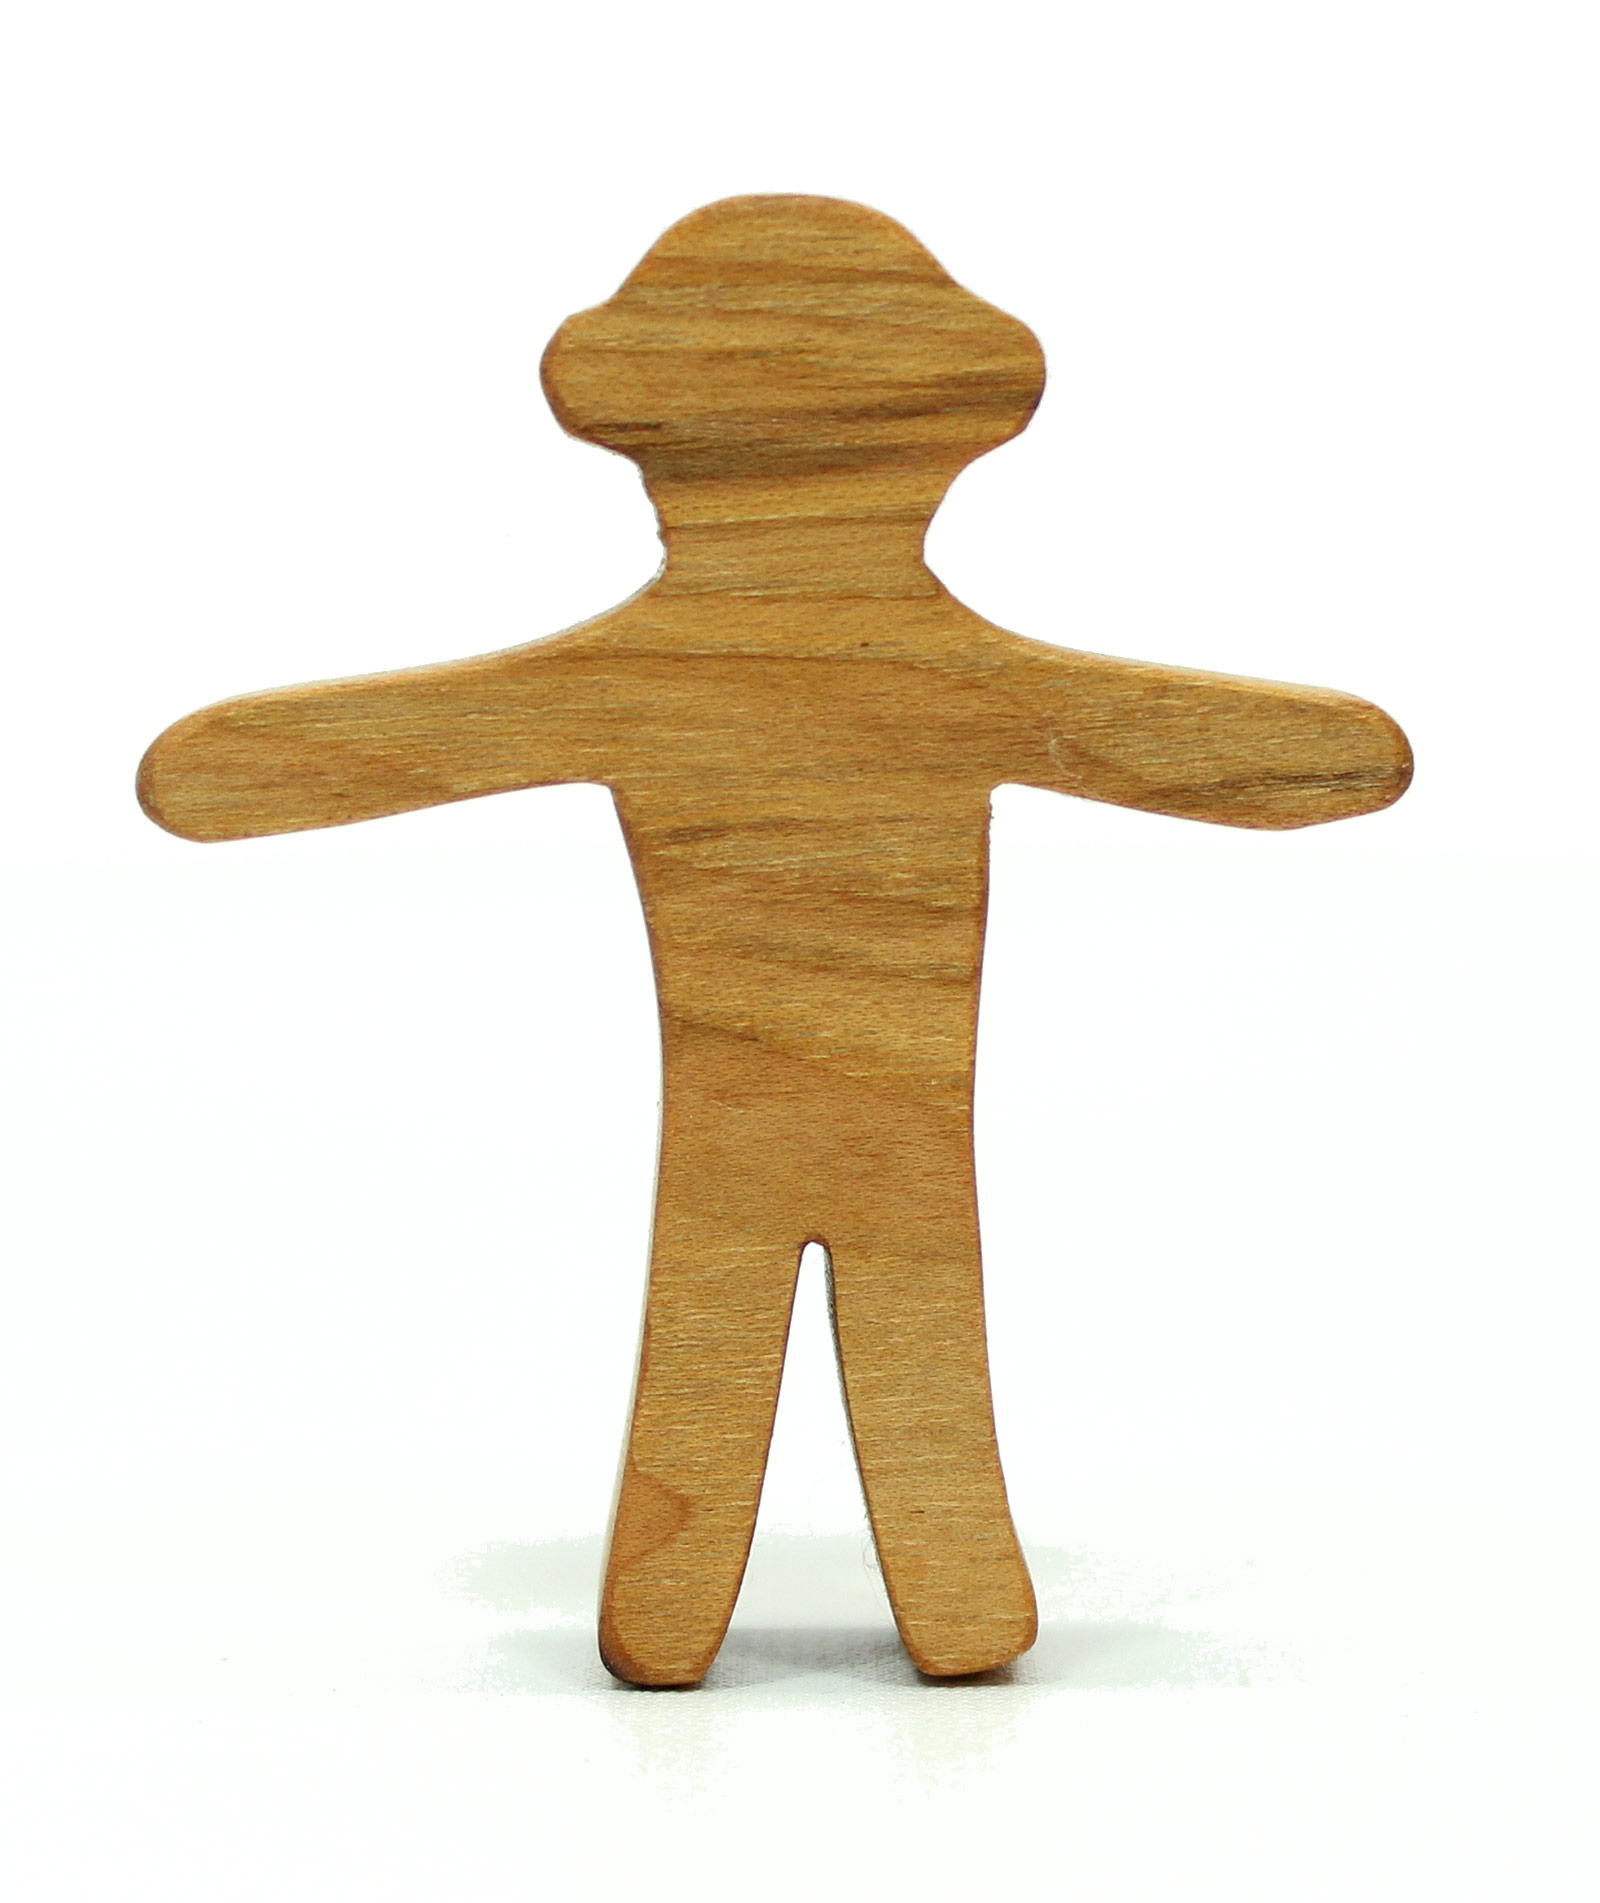 Wooden Sock Monkey Toy